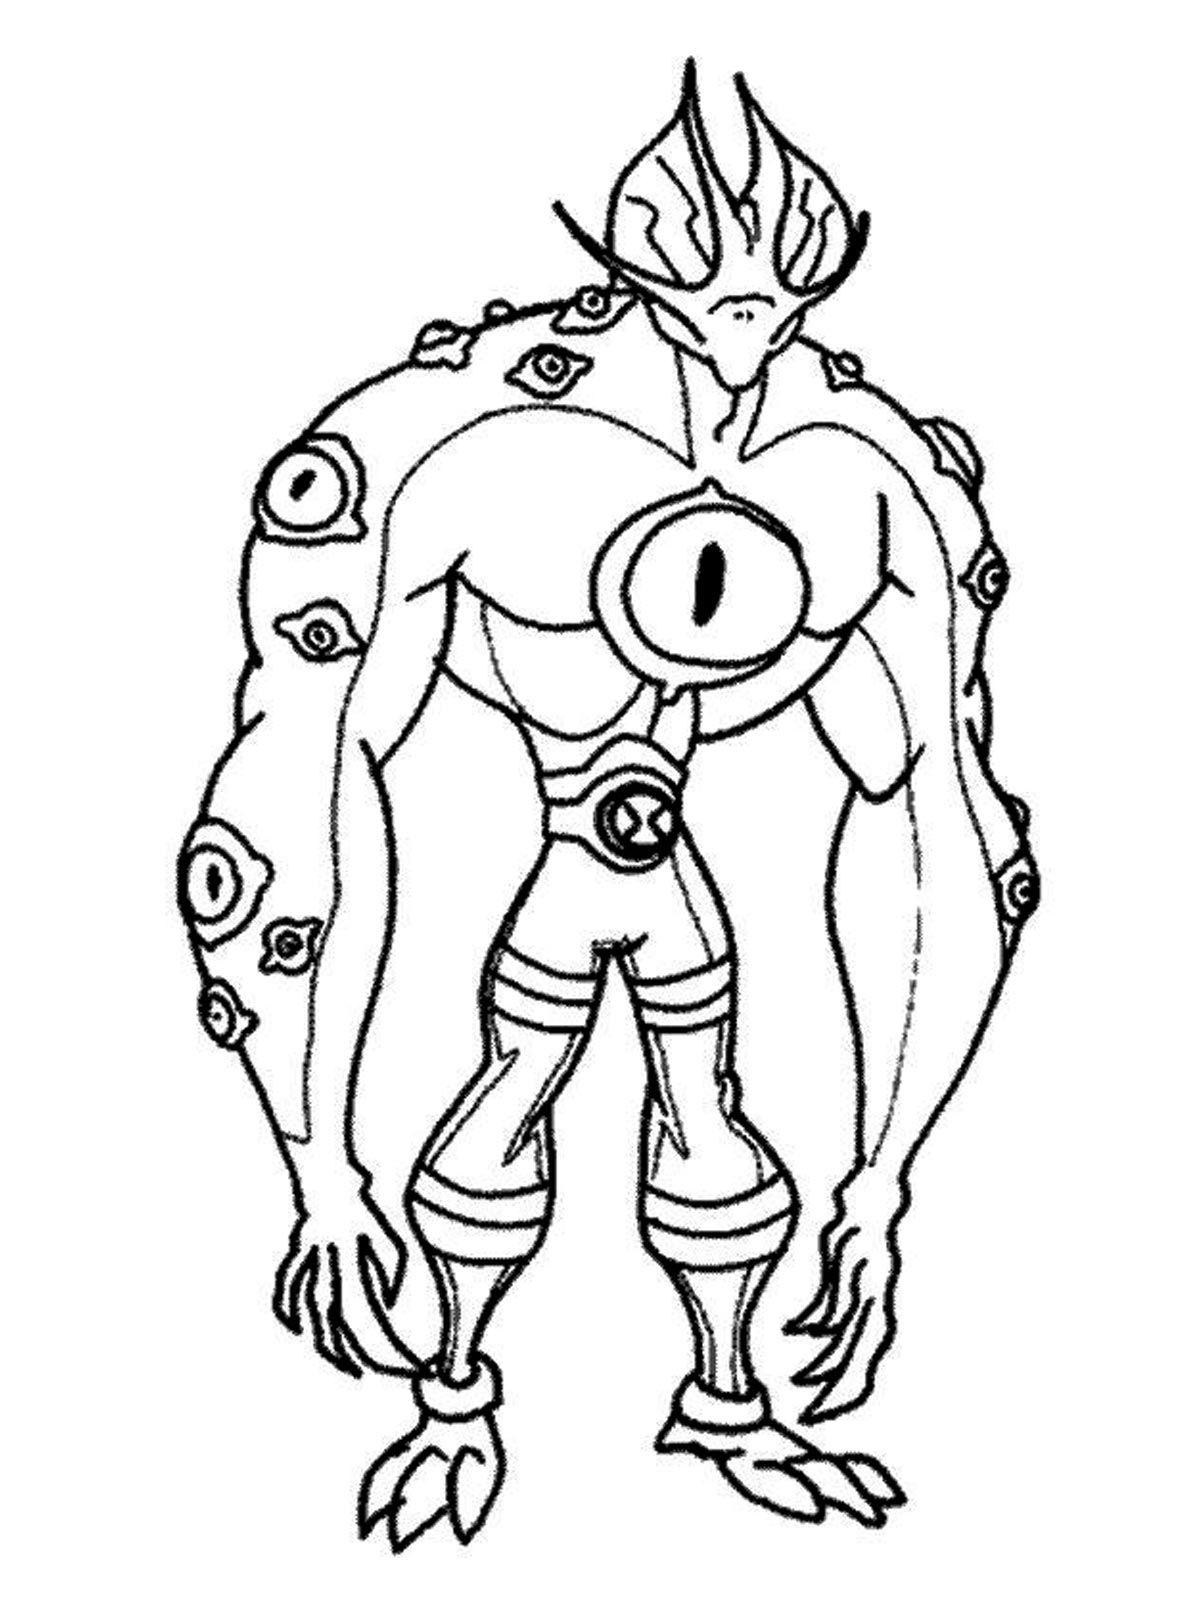 Ben 10 Swamp Fire Coloring Pages